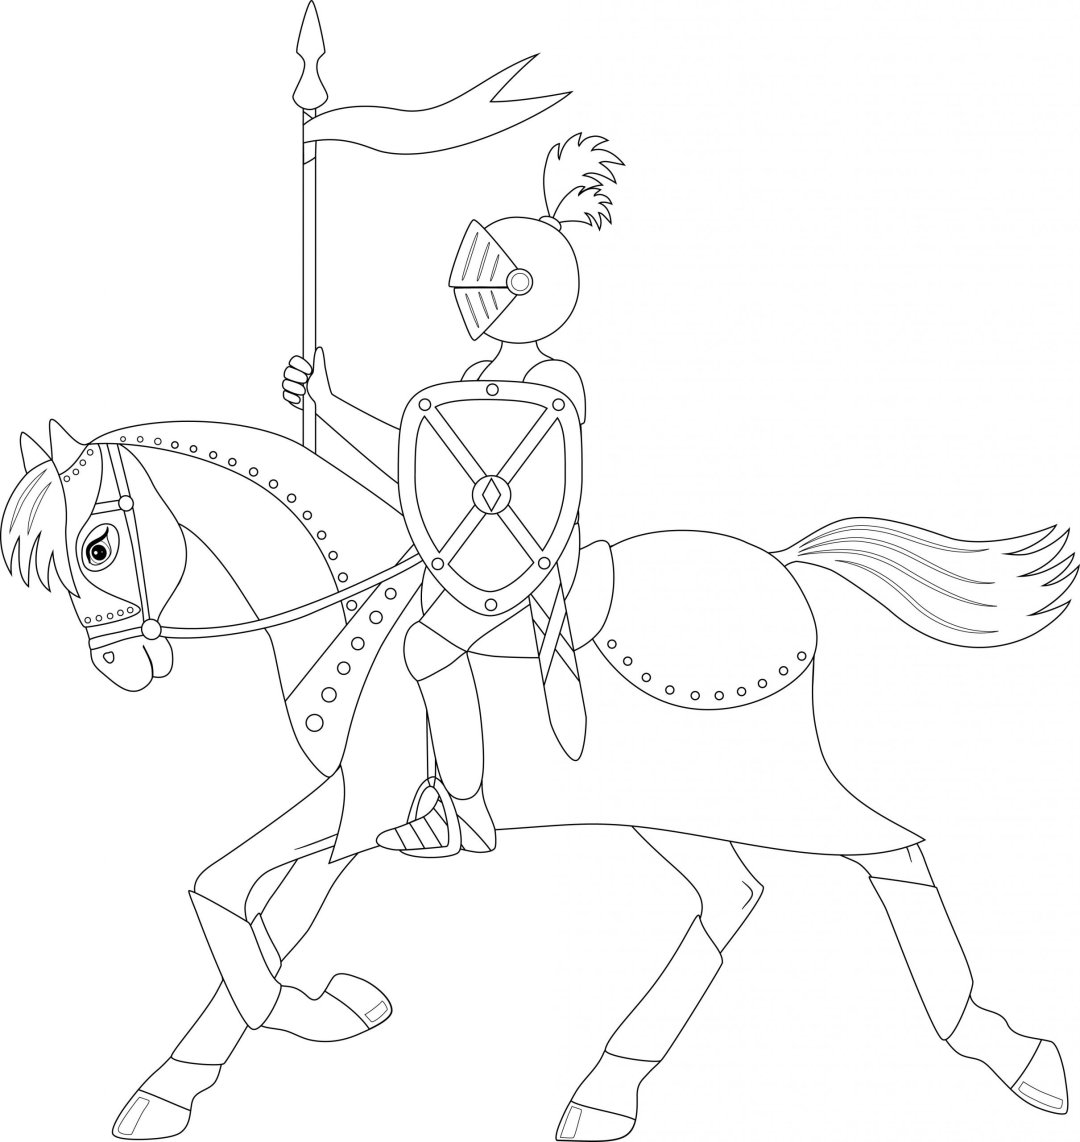 Knight on horse scaled - Cognitive Exercises for AE Patients